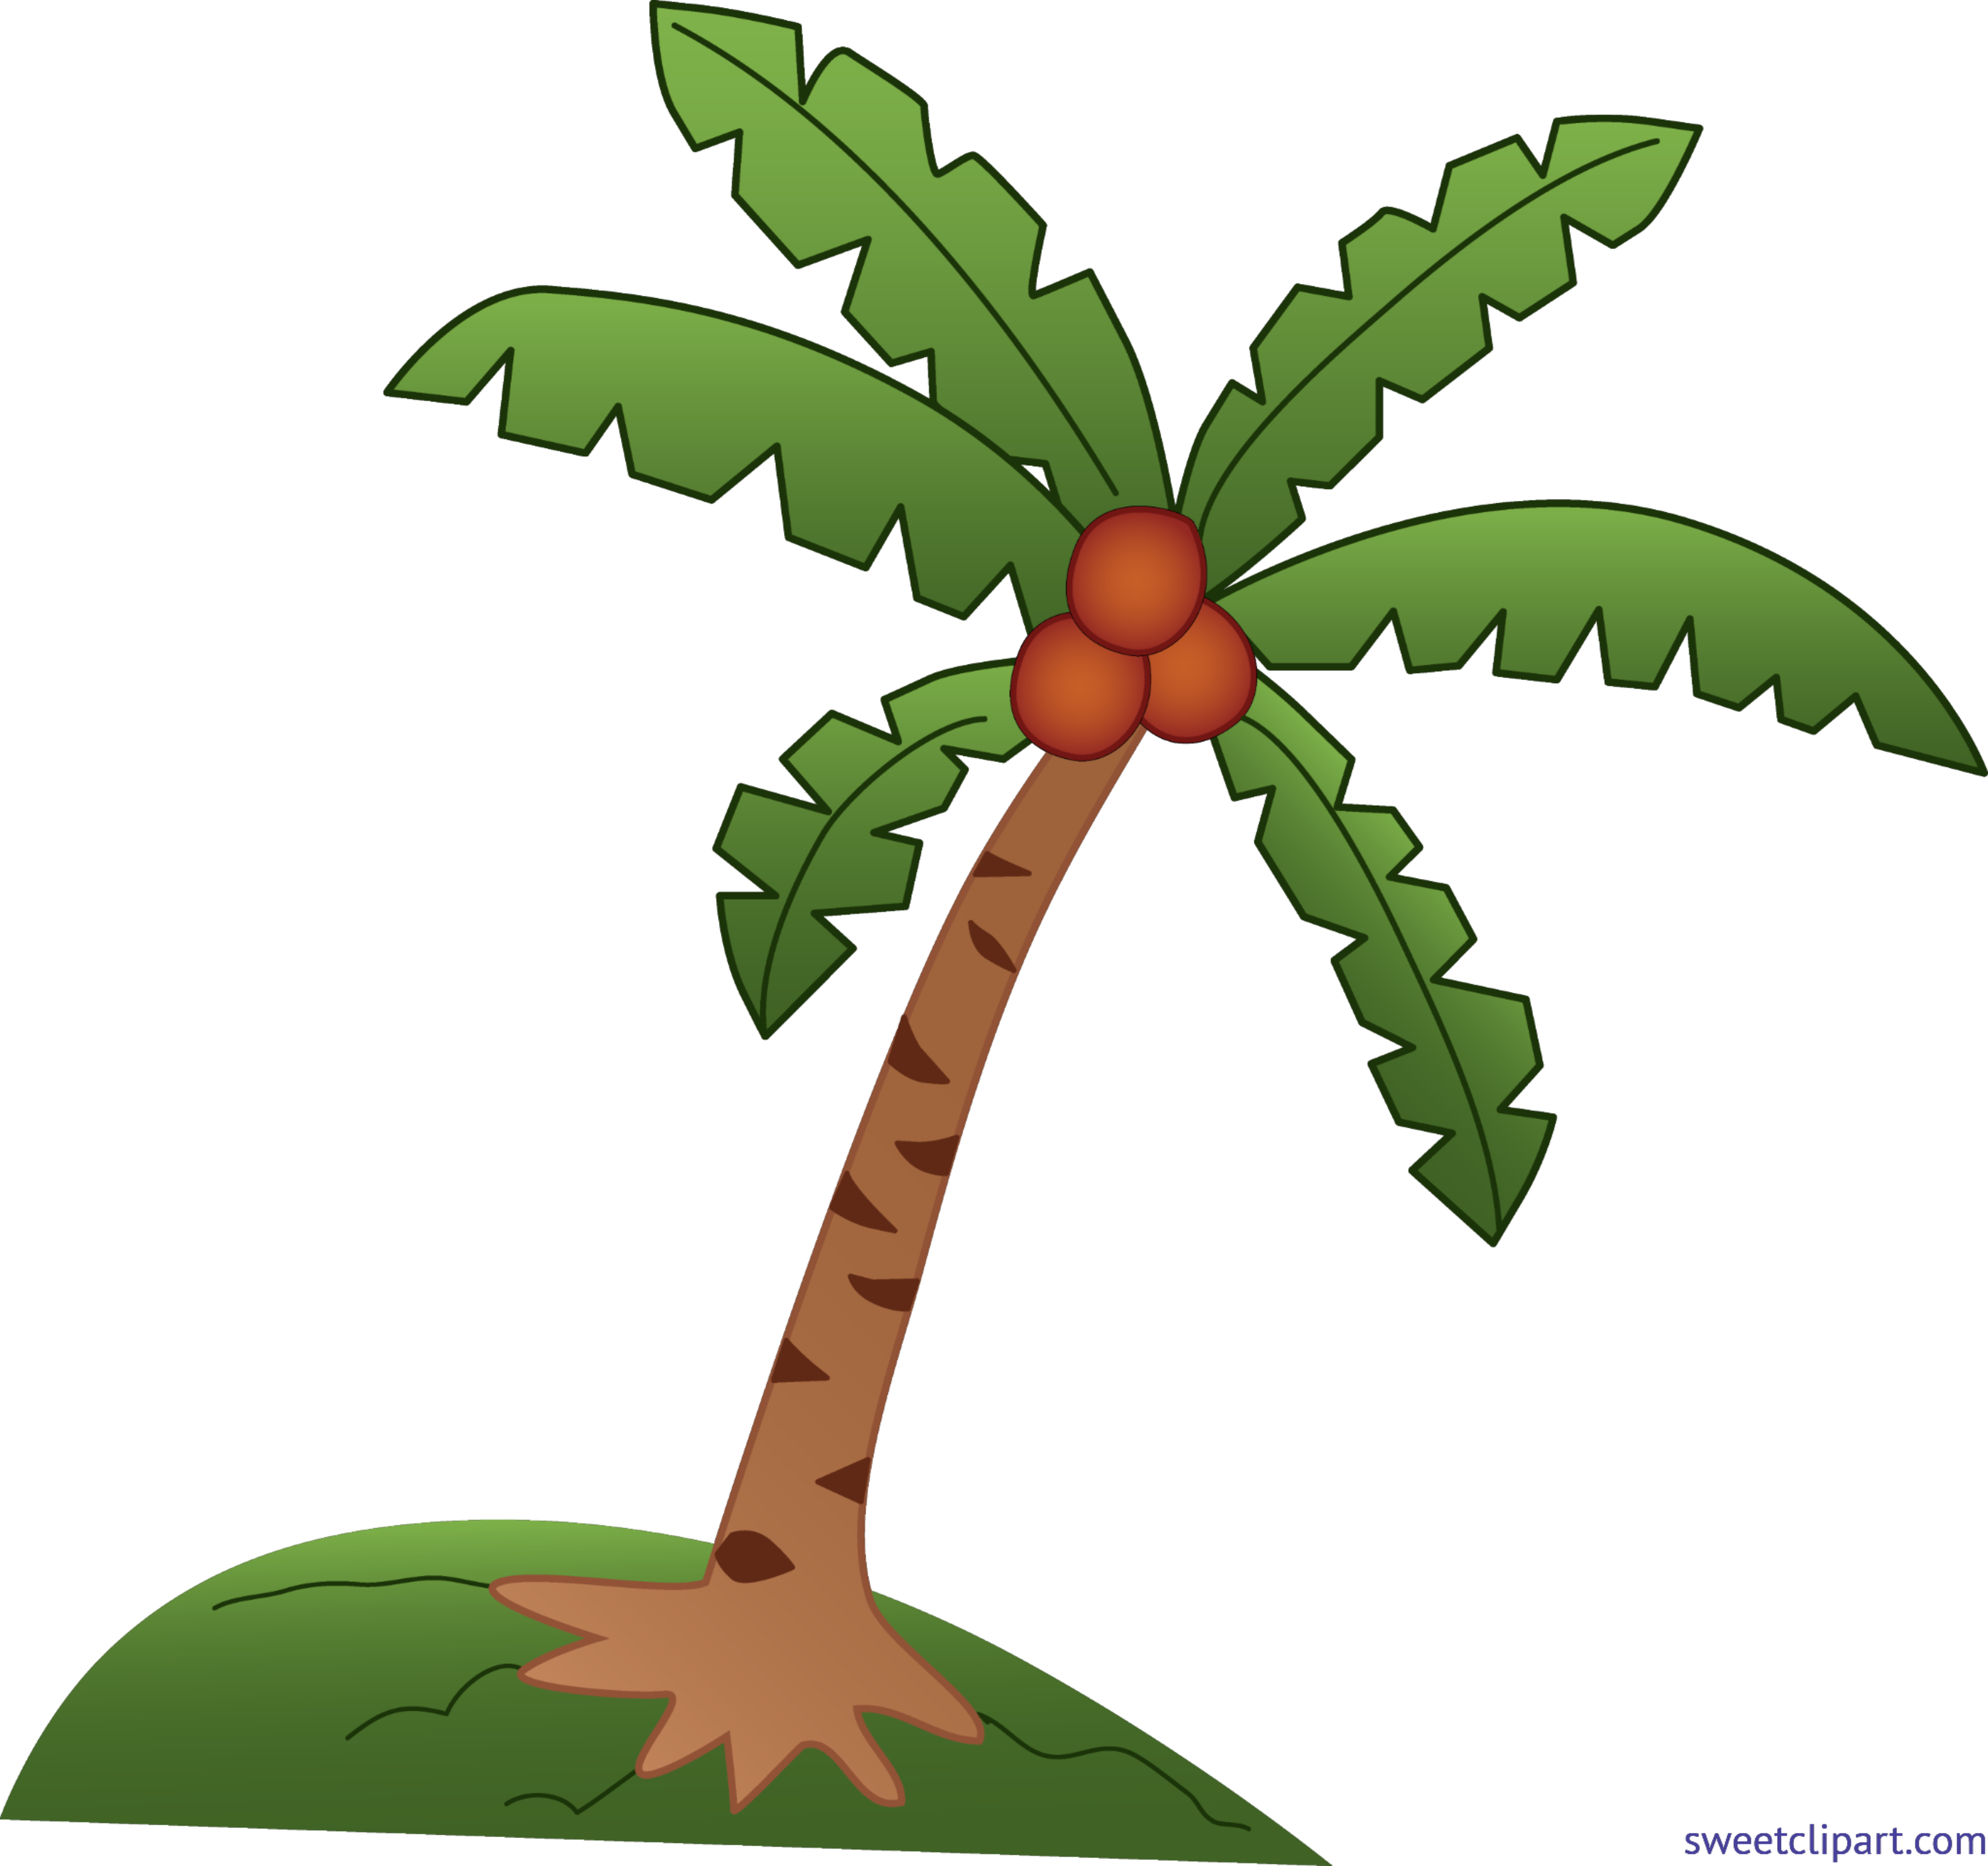 Tree clip art sweet. Coconuts vector coconut leaf royalty free